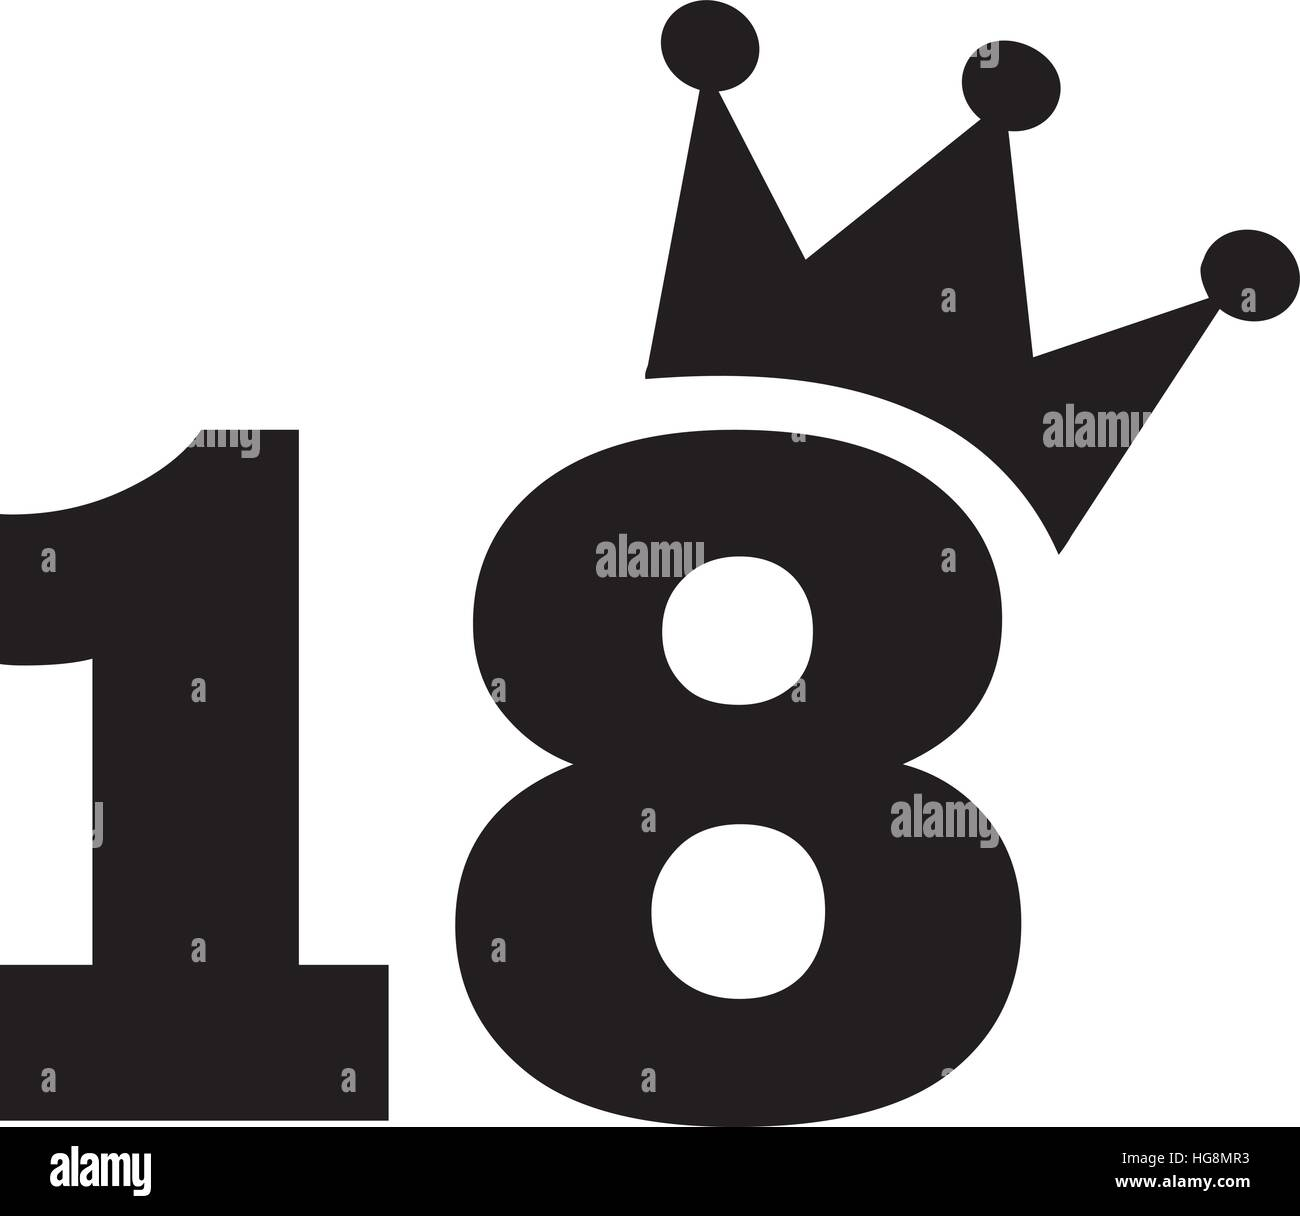 18th Birthday Number Crown Stock Vector Art & Illustration